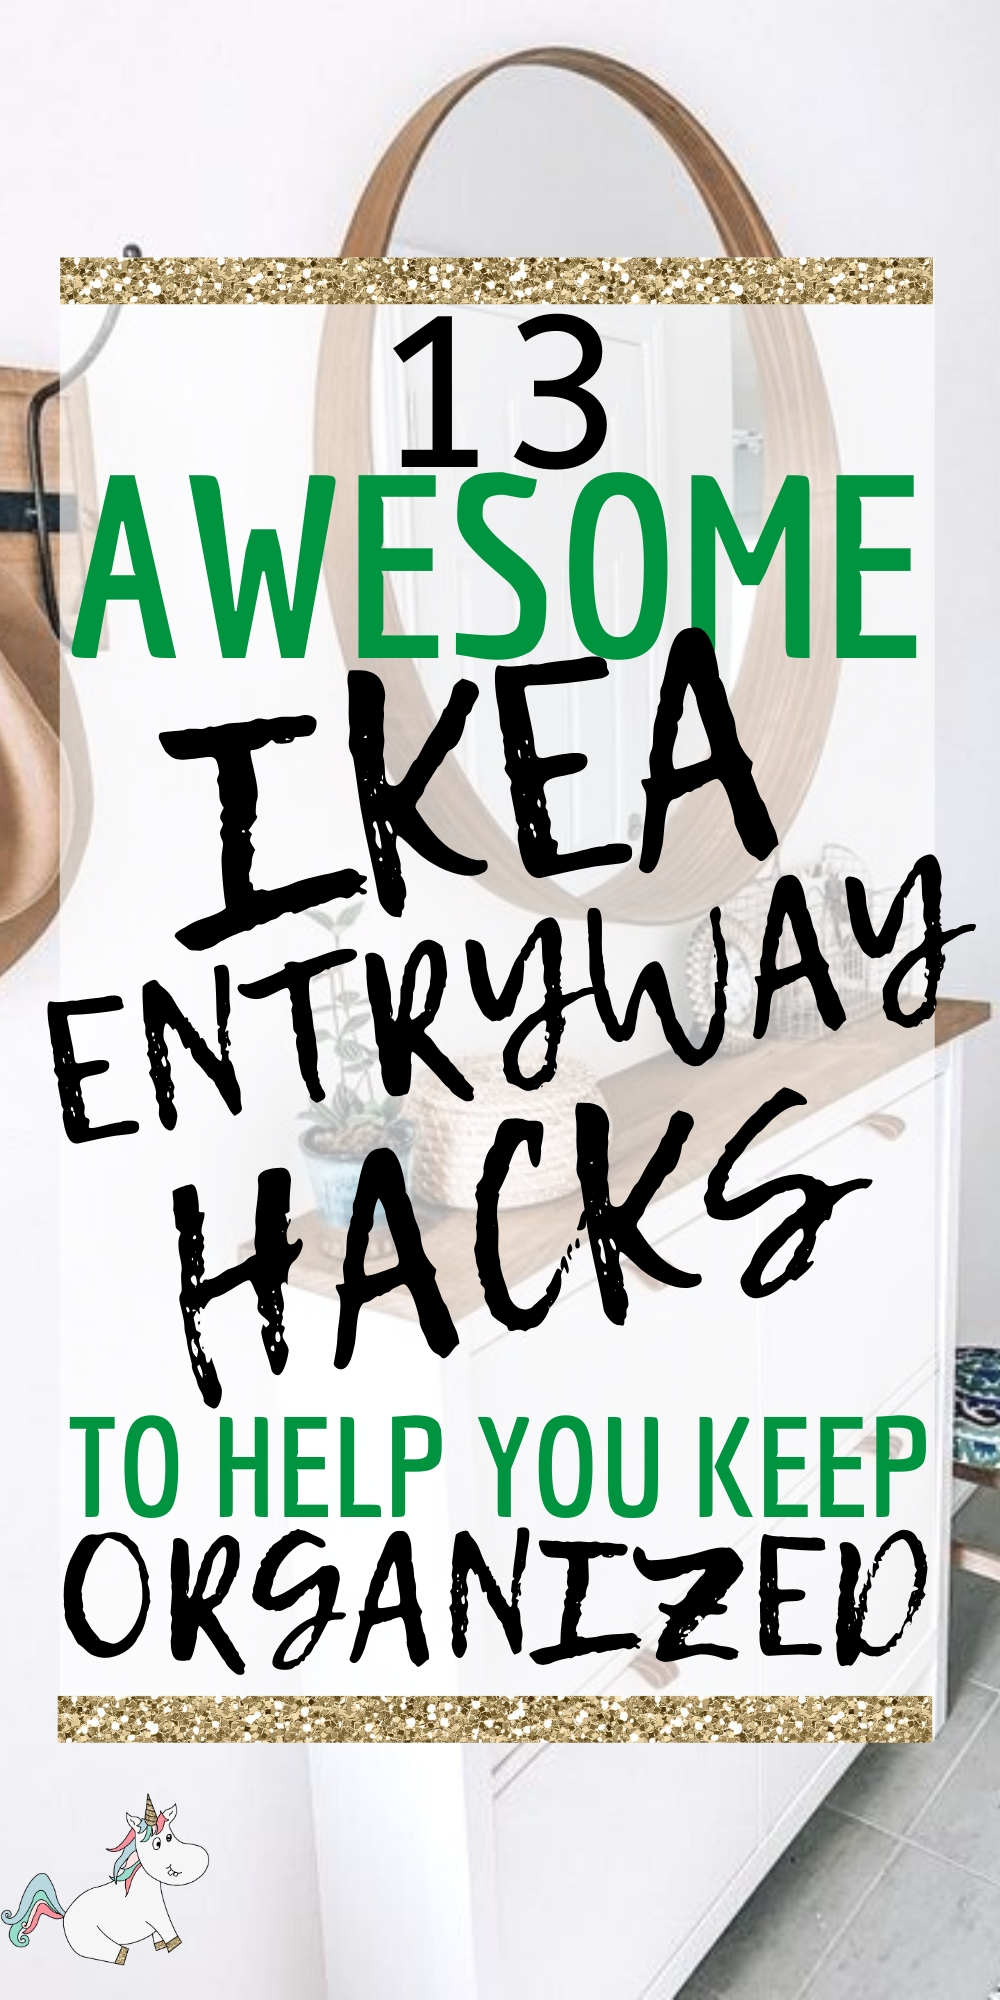 13 Awesome IKEA Entryway Ideas to Help Keep You Organized! Looking for some home decor inspiration for your hallway? Then look no further thanb these IKEA entryway hacks that will get your hallway decor looking stunning and organised! From beautiful mudrooms to shoe storage ideas... these ikea hacks have got you covered! #ikeahacks #ikeahack #entrywaydecor #homedecor